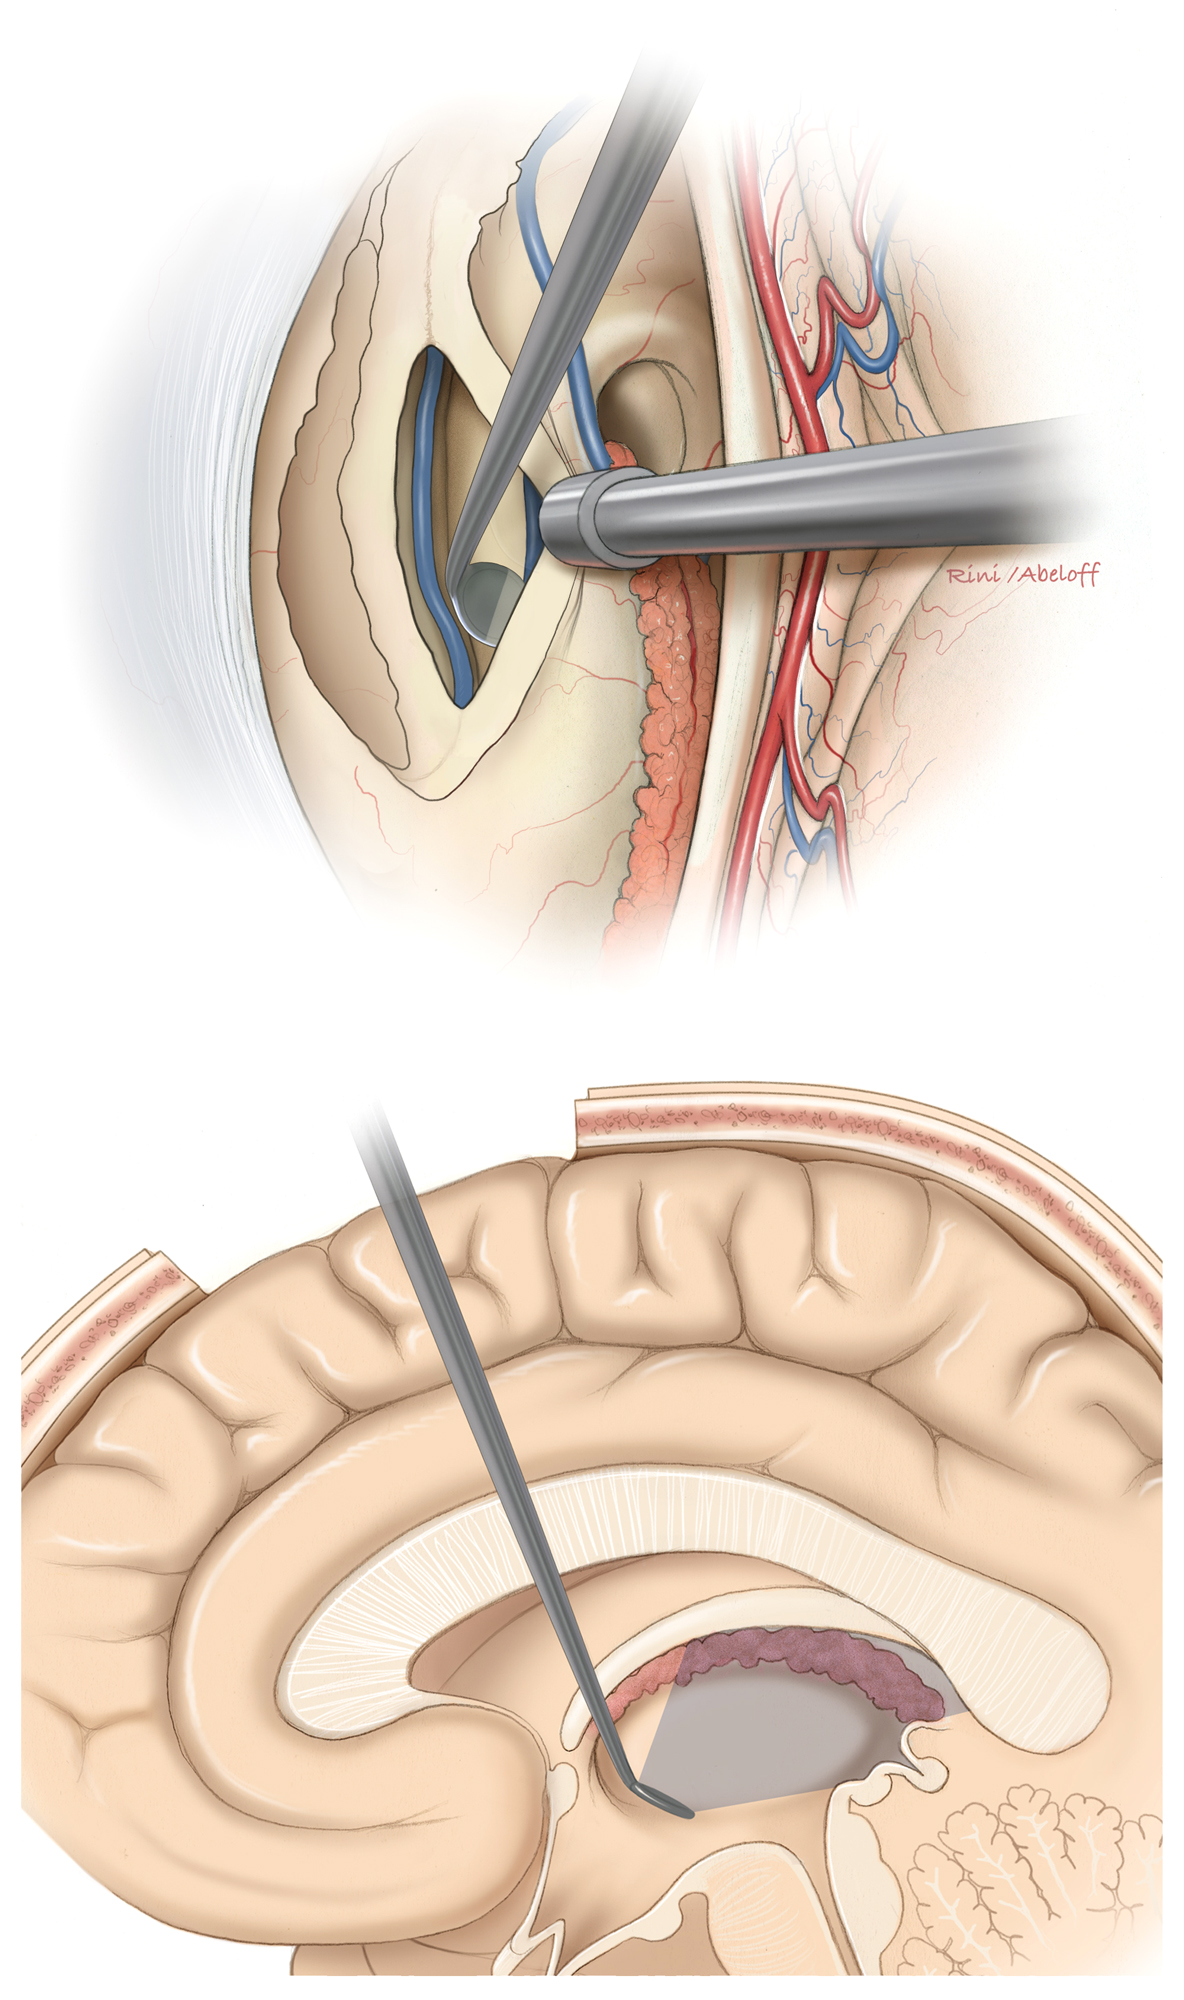 Figure 8: The tumor is cautiously separated from the internal cerebral veins (top). An angled micromirror (dental mirror) can expand the viewing angles and reveal/inspect the posterosuperior space within the third ventricle (the operative blind spot)(bottom).